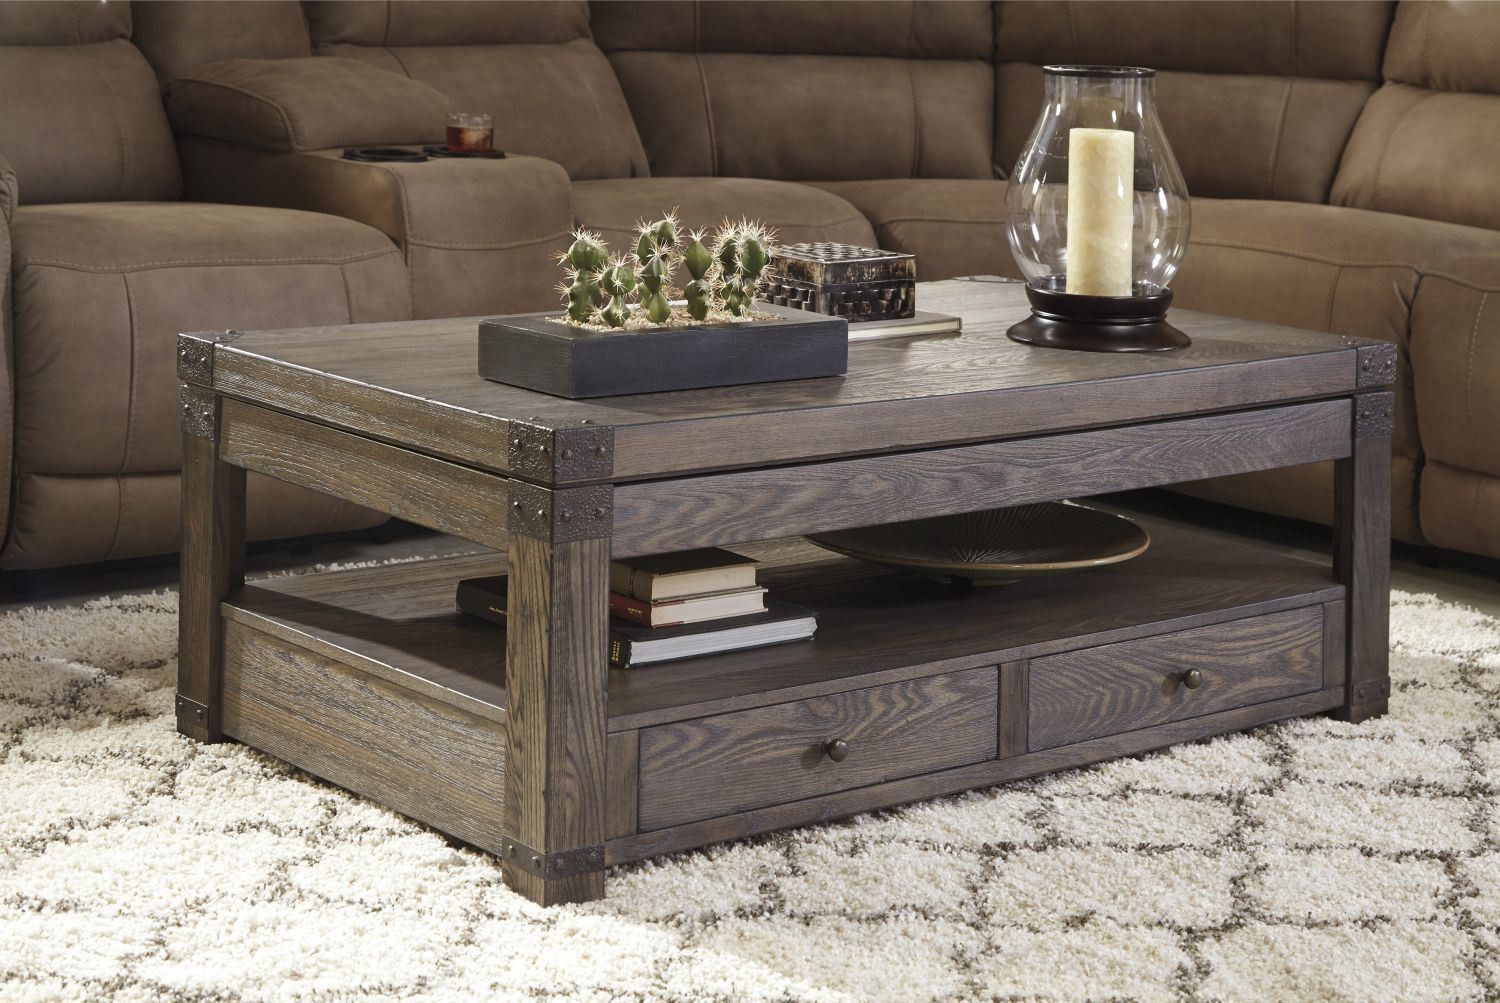 Best ideas about Ashley Furniture Coffee Tables . Save or Pin Burladen Rect Lift Top COFFEE Table D T846 9 Now.